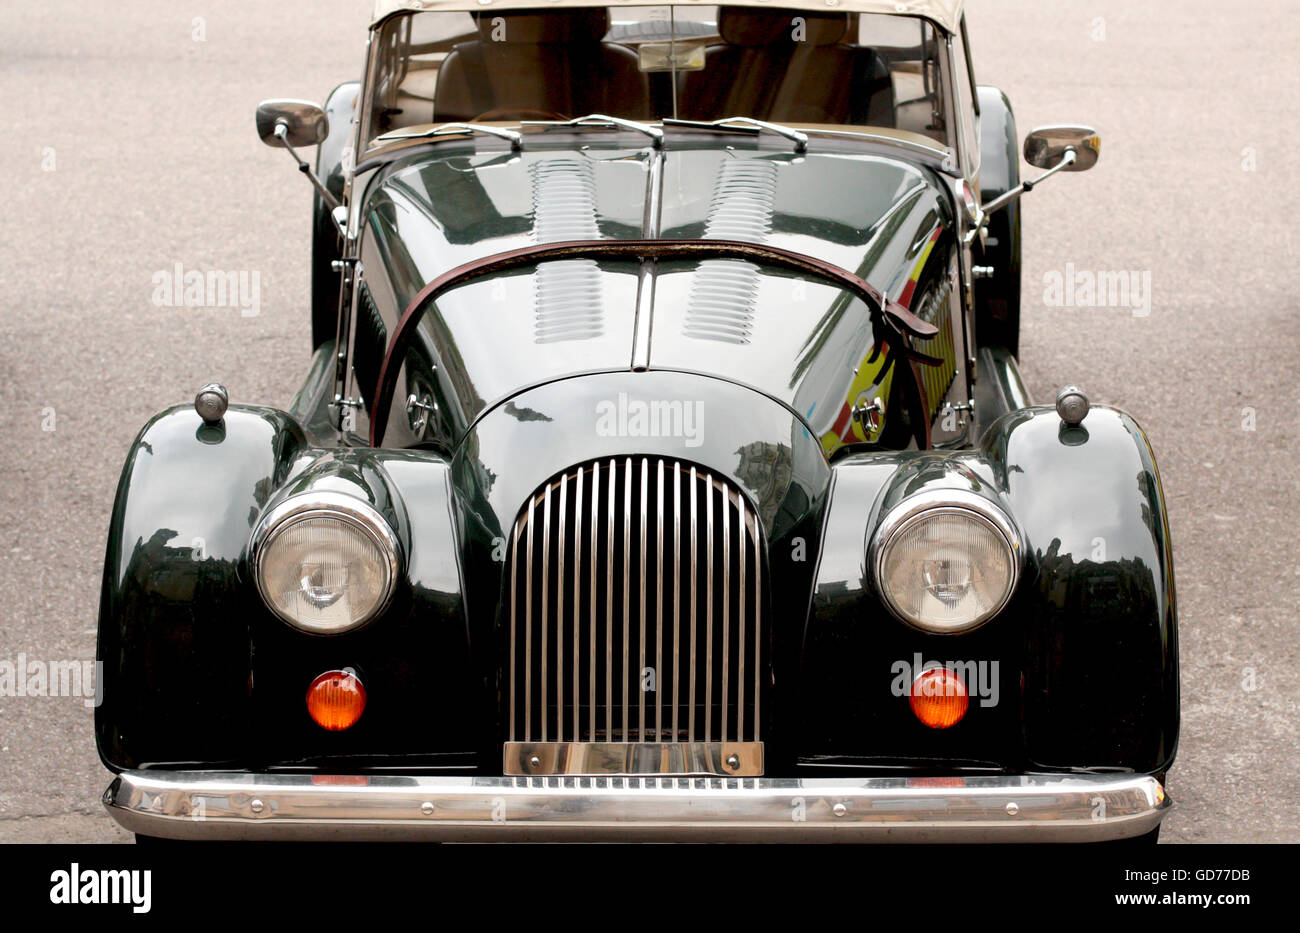 old style car in the street Stock Photo, Royalty Free Image ...